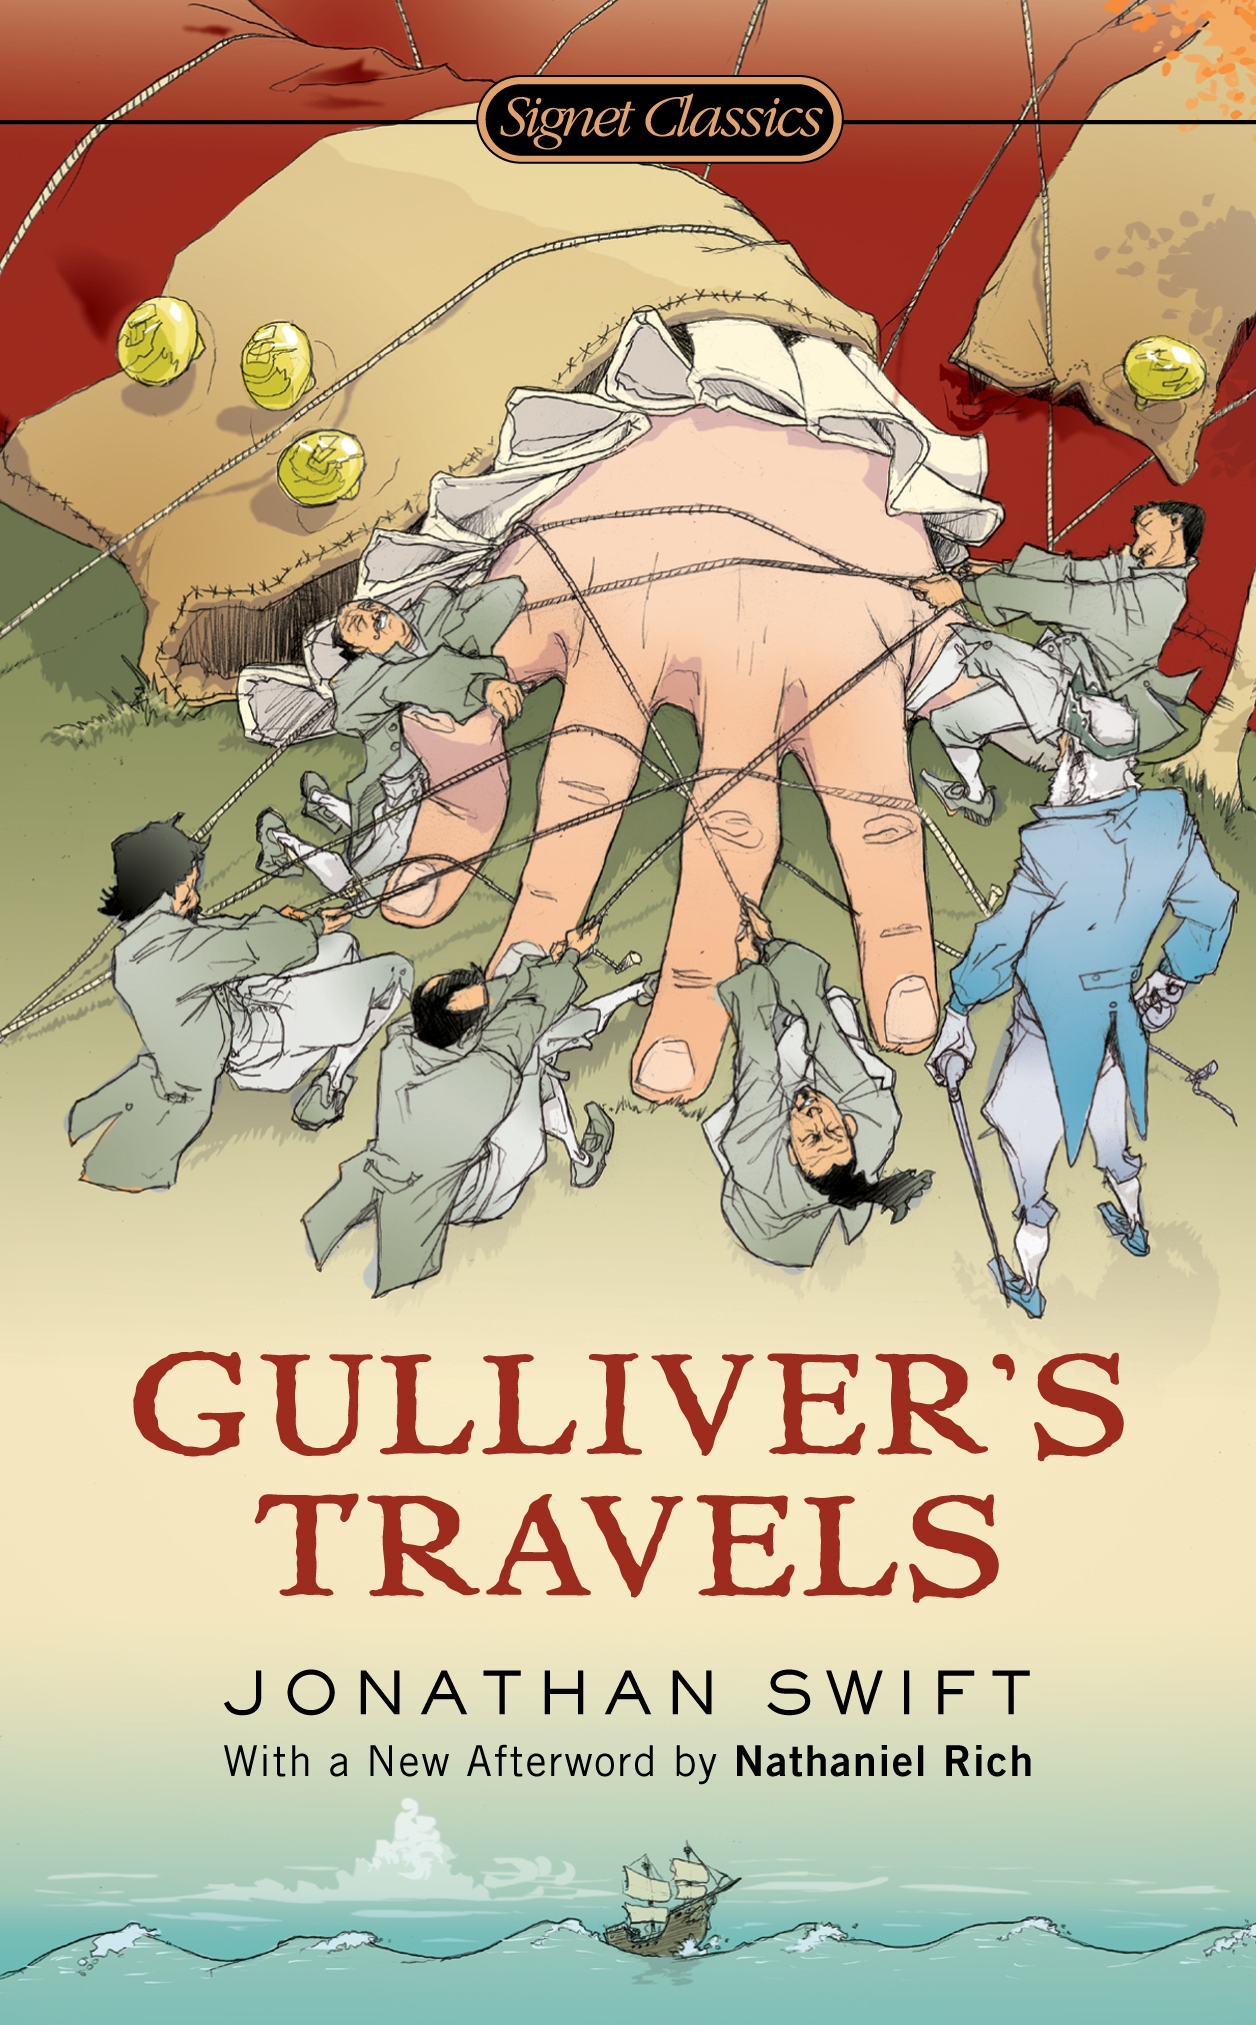 an analysis of english politics in gullivers travels by jonathan swift Gulliver's travels by jonathan swift is one of the greatest satirical works ever  written  protagonist, swift exposes many of the follies of the english  enlightenment,  revisits these themes from the philosophical-political  perspective (and earlier.